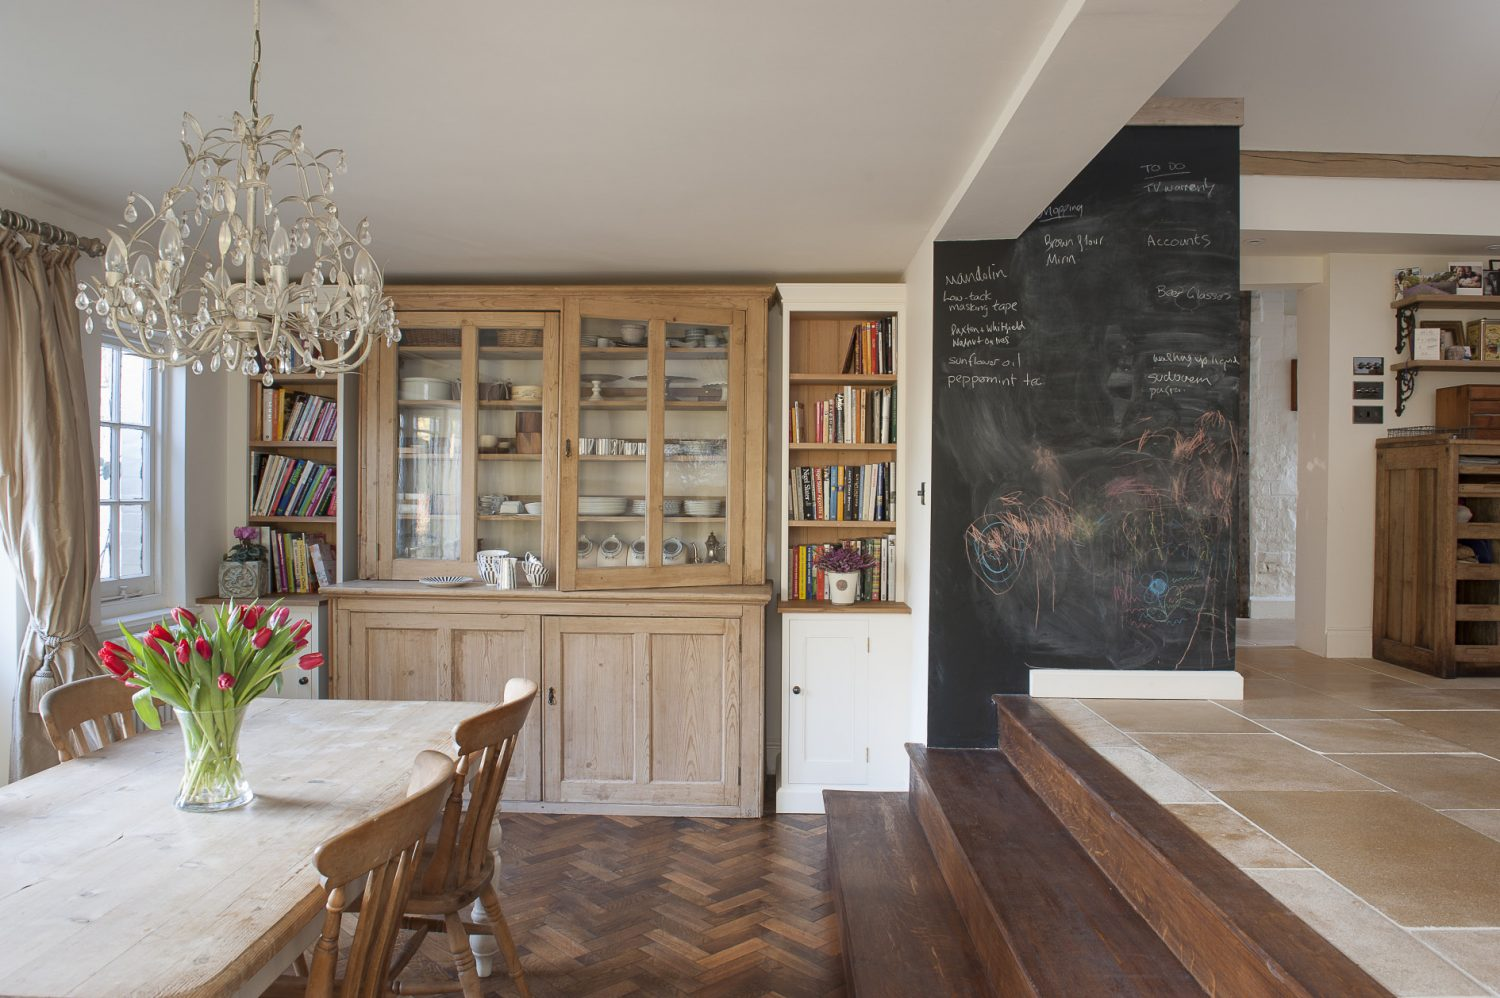 Steps from the kitchen lead down into the bright and airy breakfast room